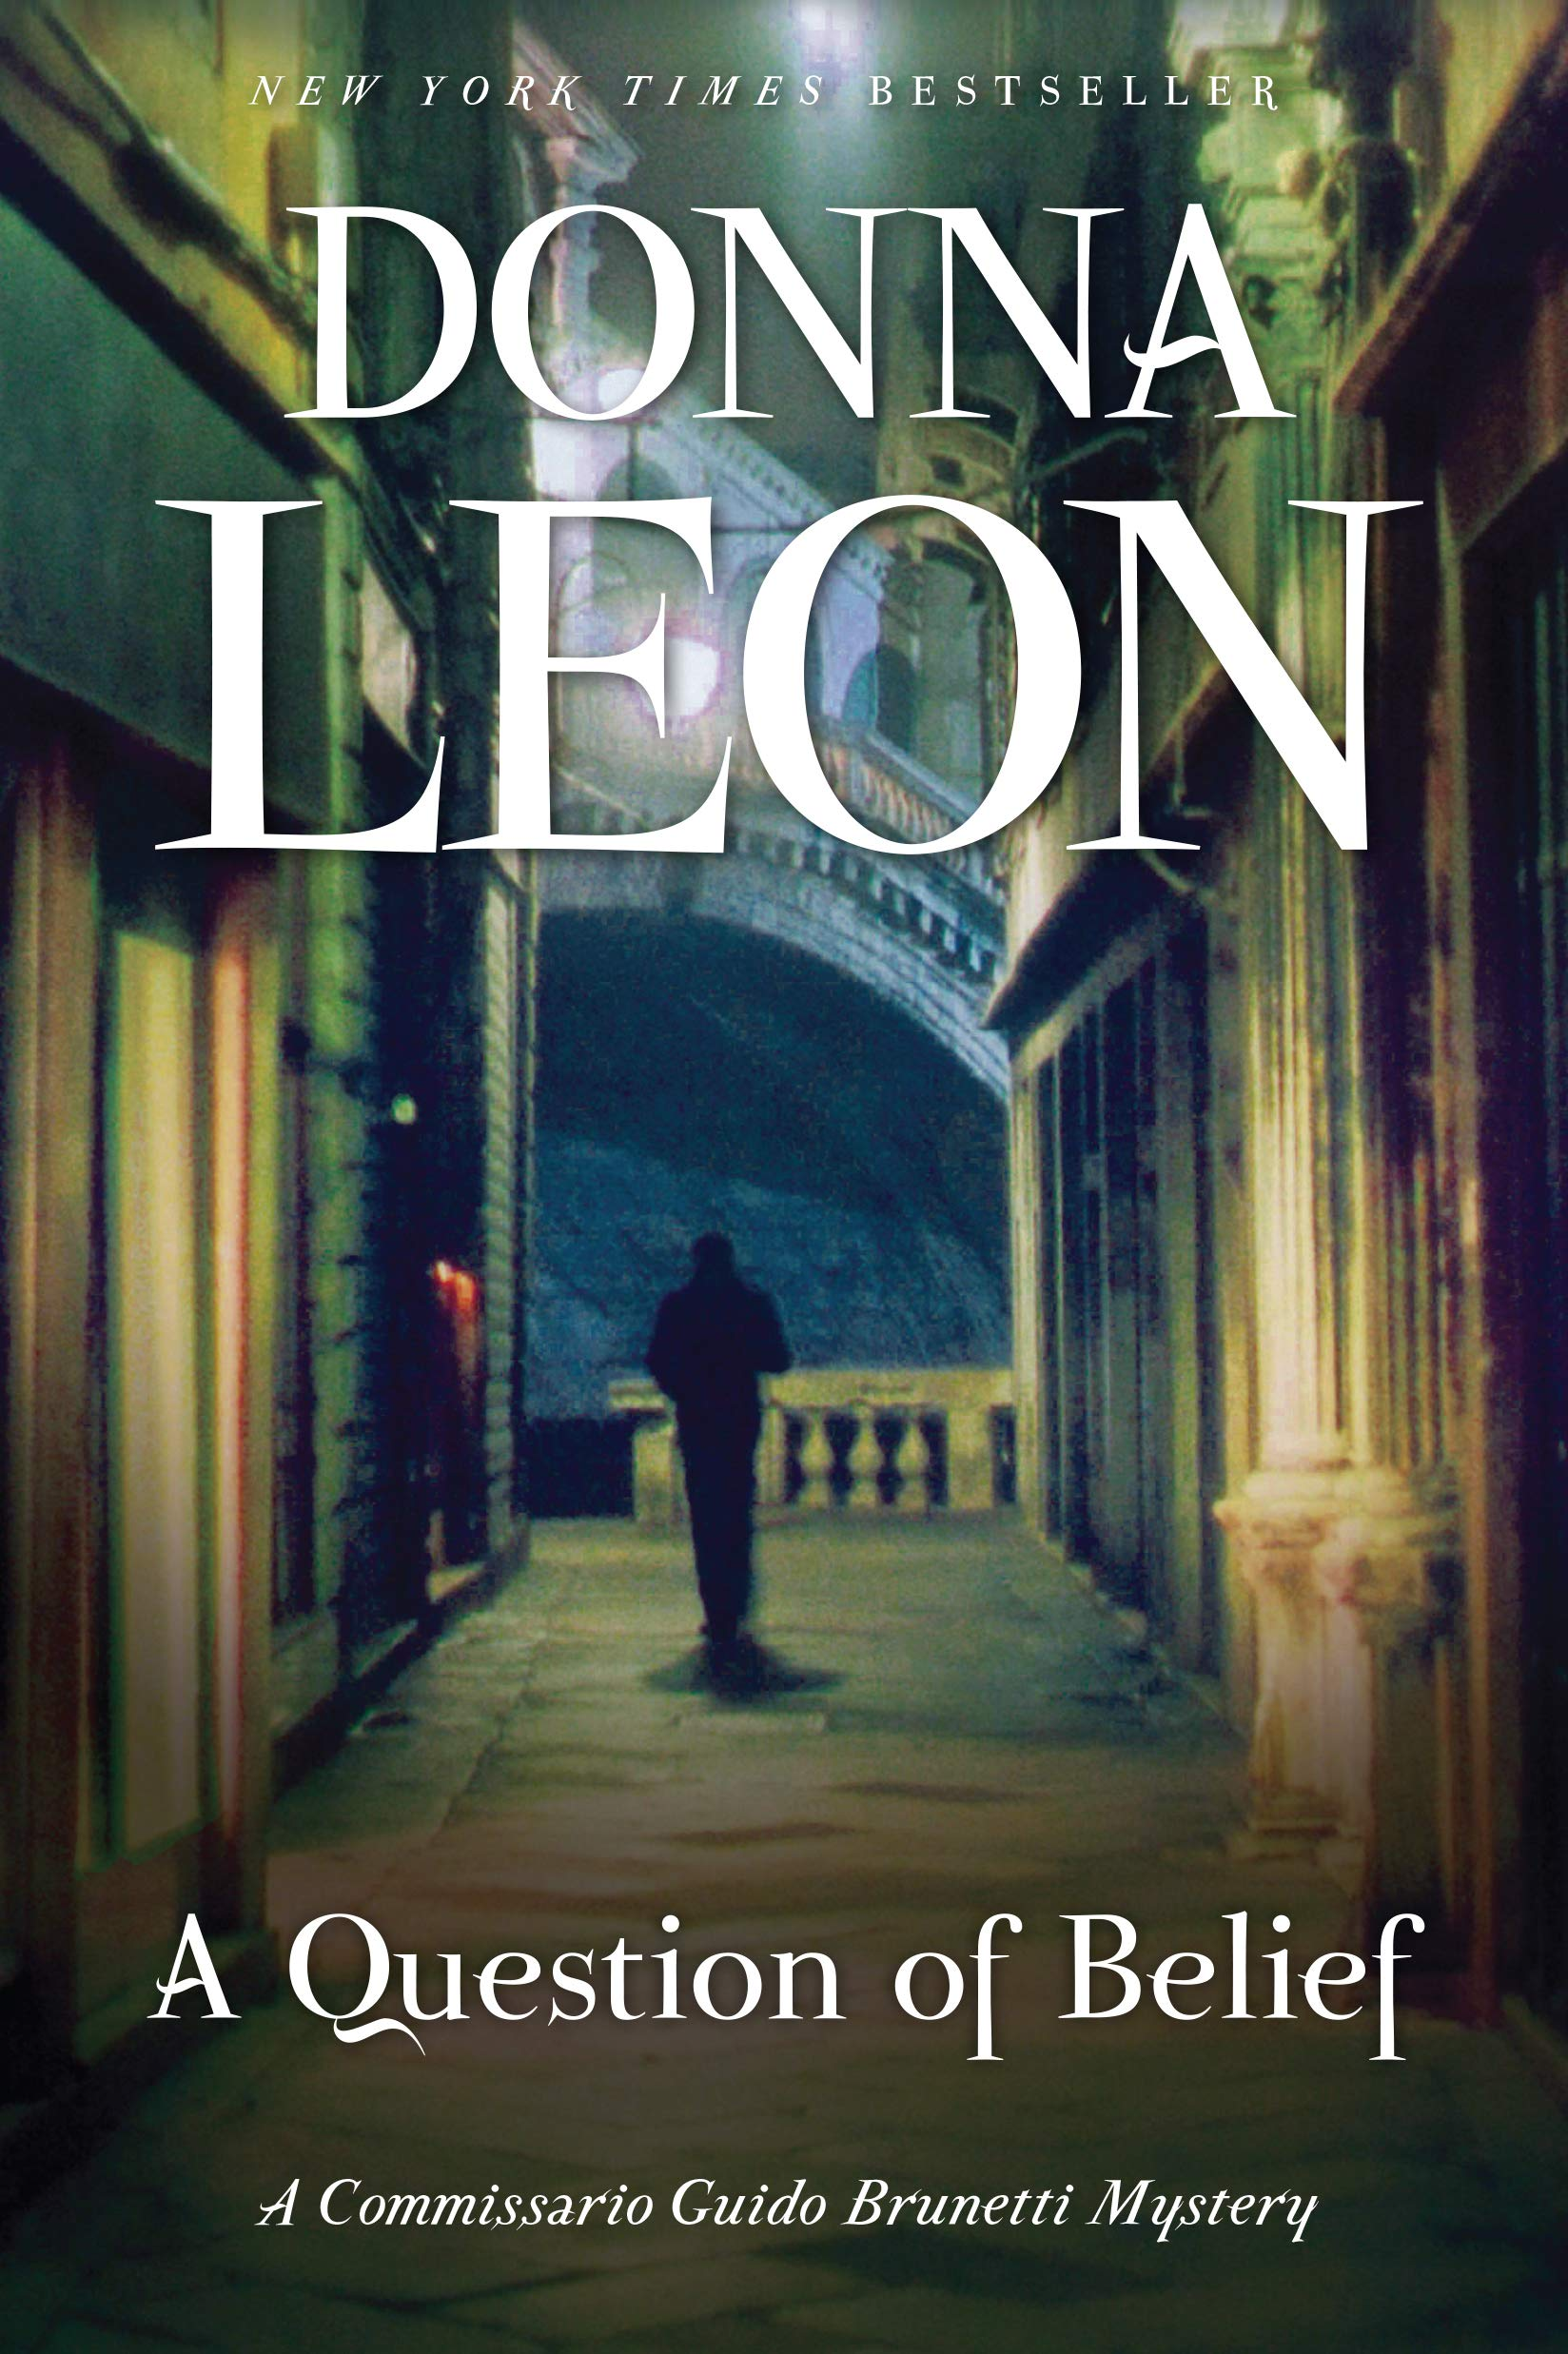 A Question Of Belief A Commissario Guido Brunetti Mystery The Commissario Guido Brunetti Mysteries 19 Leon Donna Leon Donna 9780802129550 Books